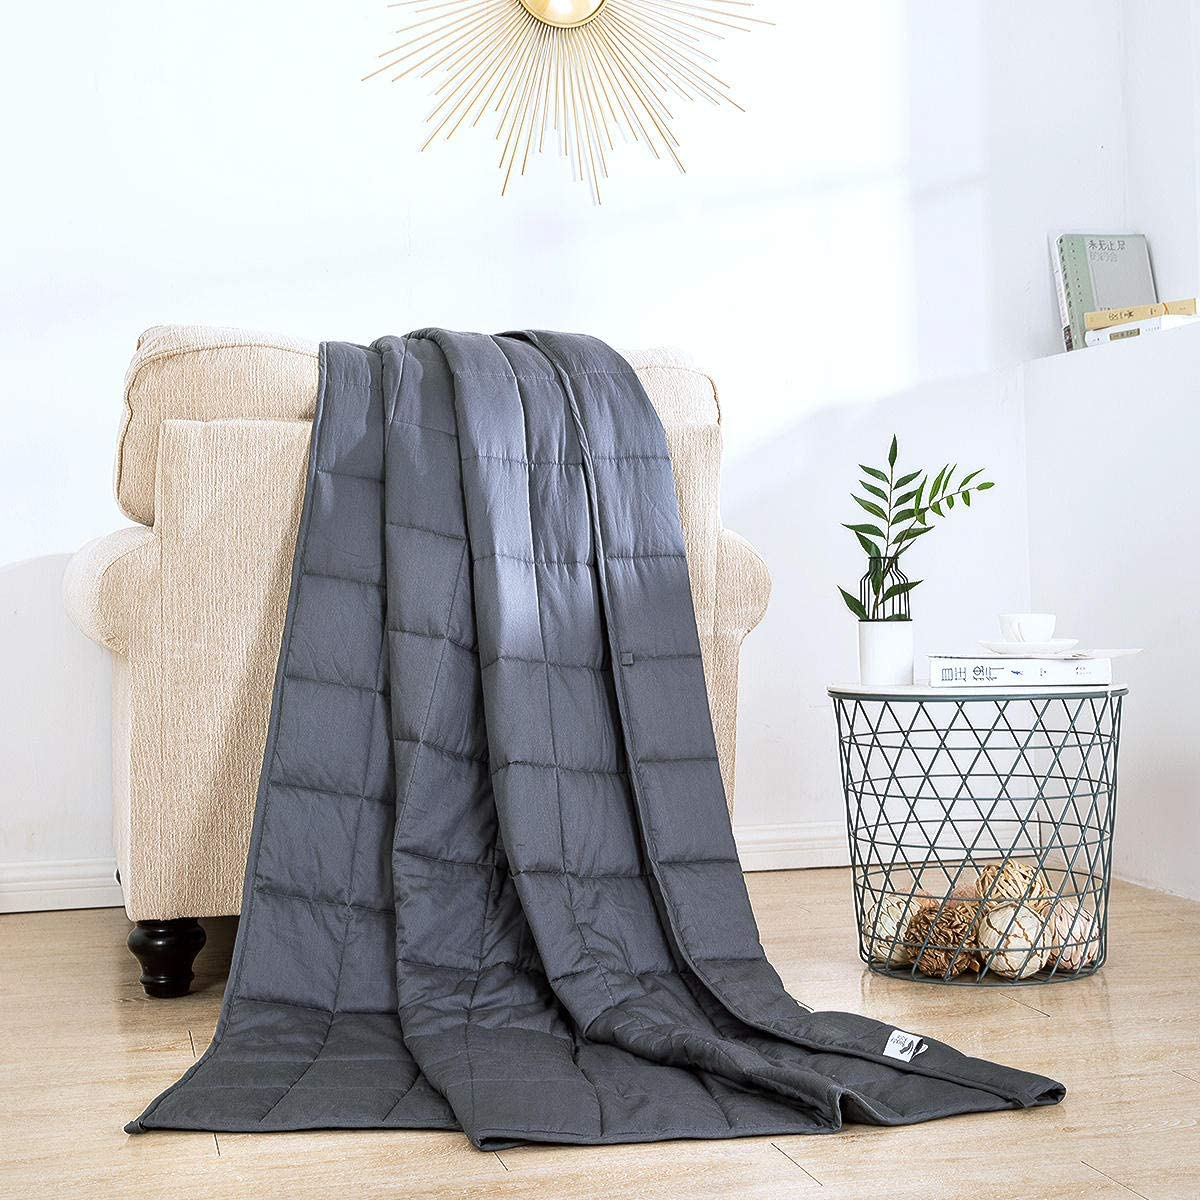 60 x 80 inch 100/% Cotton Weighted Blankets with Glass Beads for Calming Comfort Beauty Kate Weighted Blanket 20lbs Queen Size Grey Heavy Blanket for Adults